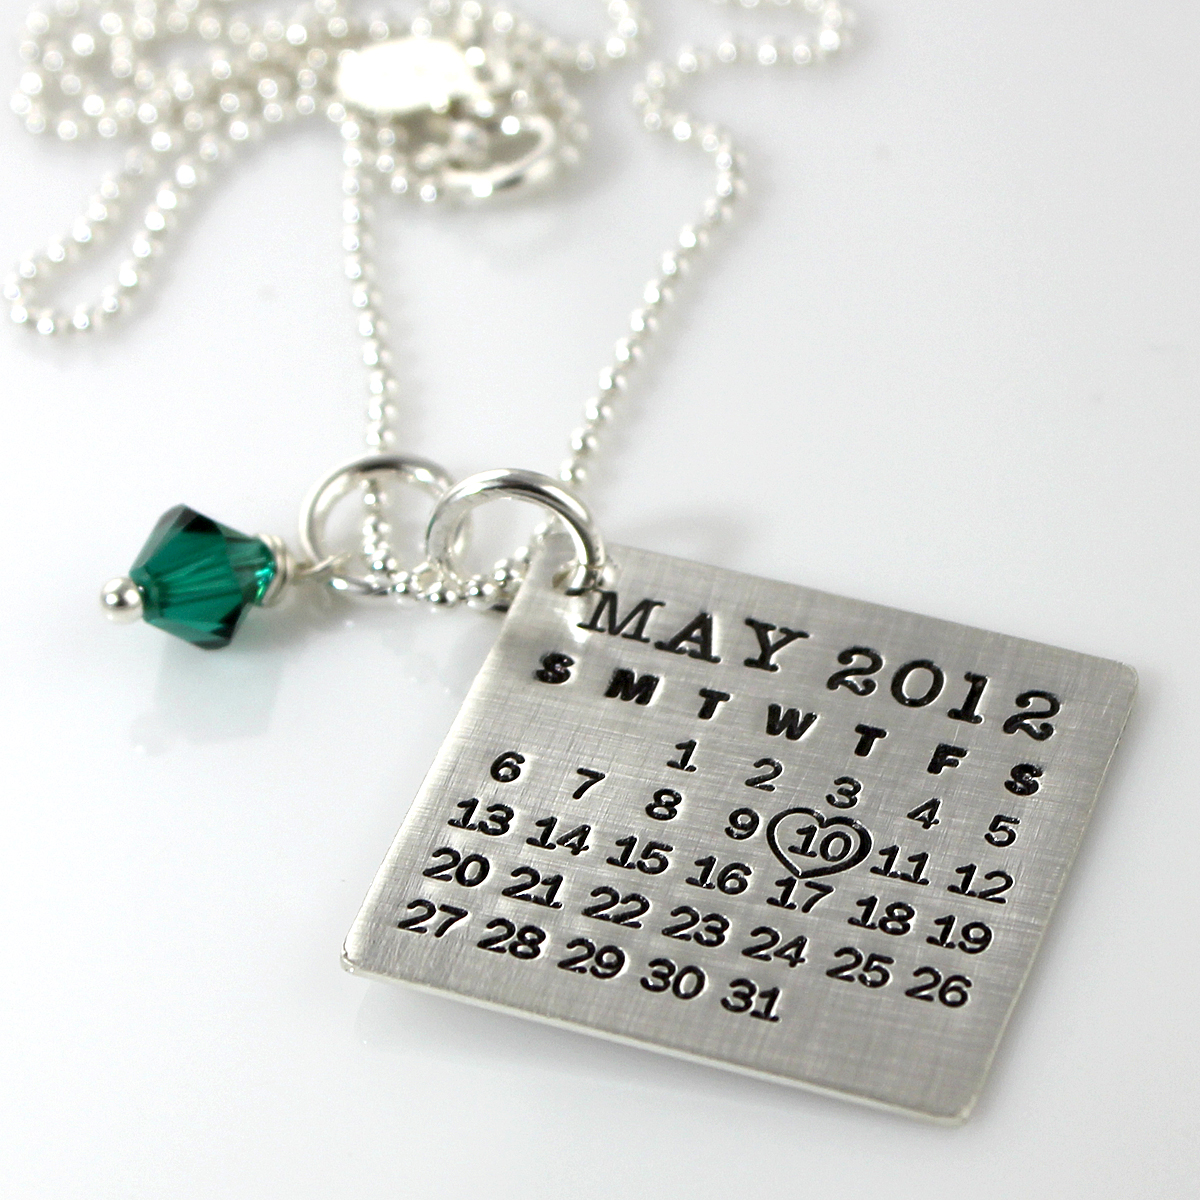 Mark Your Calendar Necklace with crystal dangle